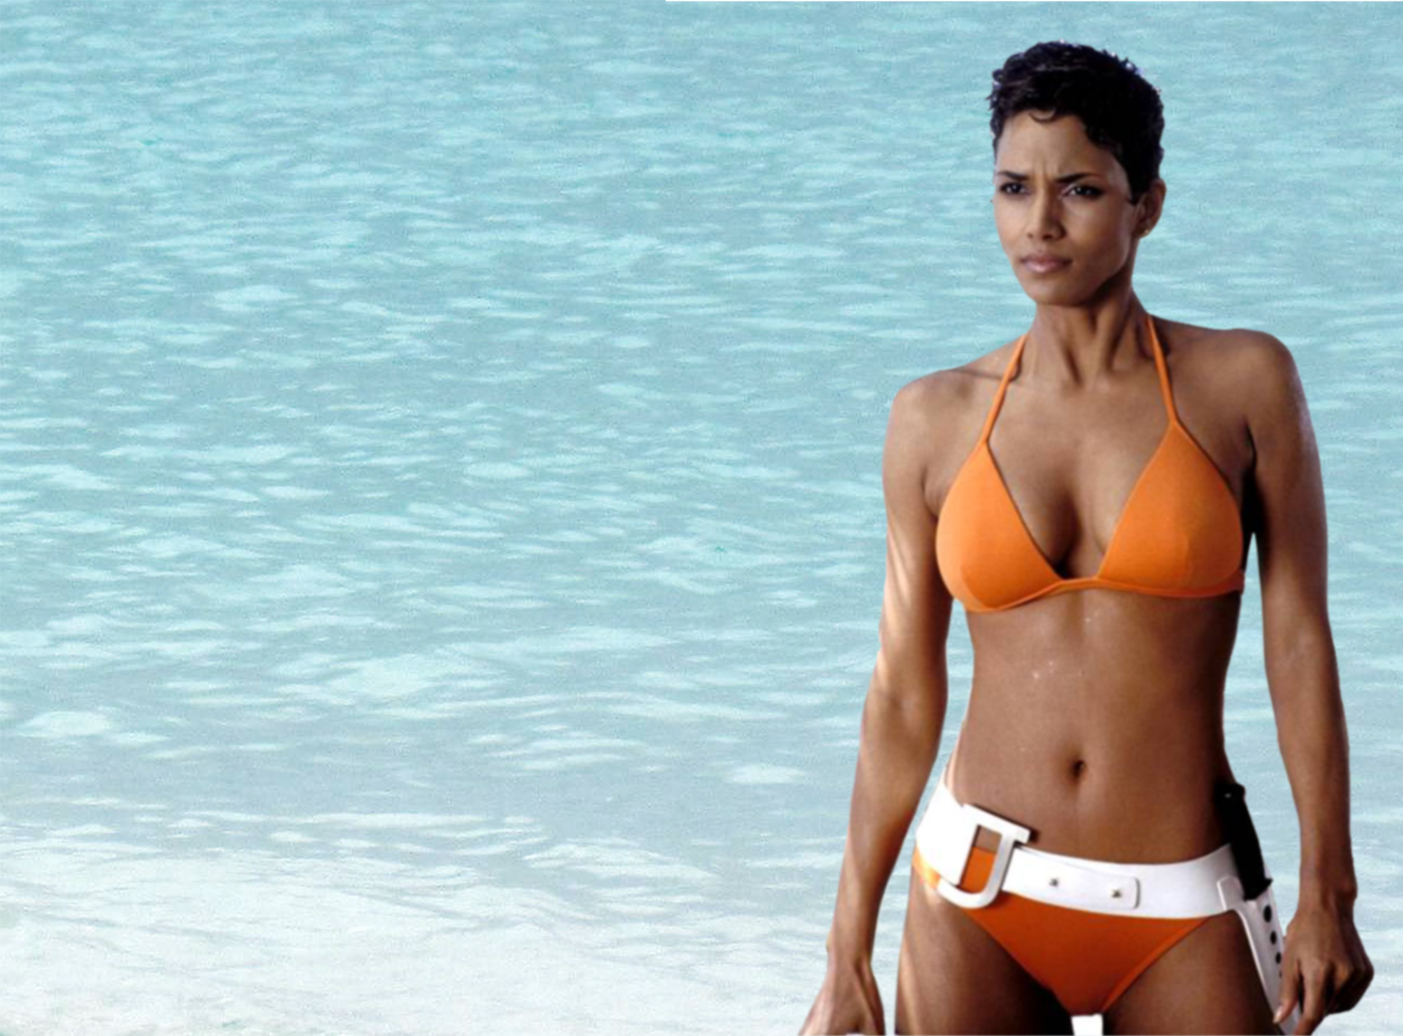 Halle Berry as Jinx in Die Another Day (2002)